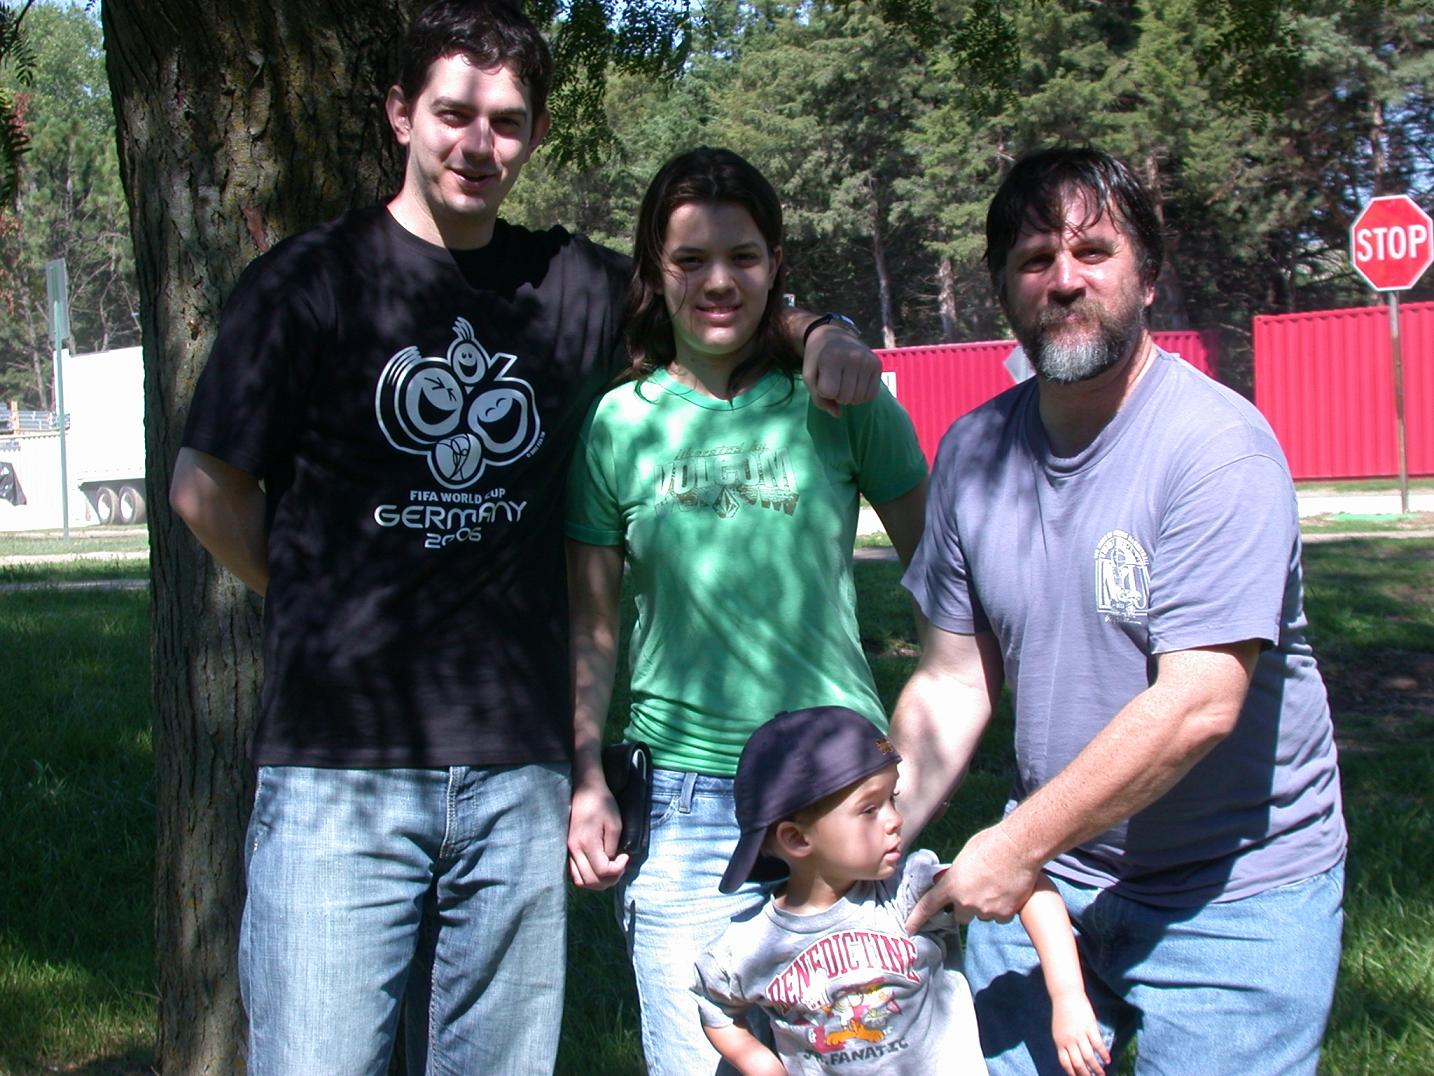 Robert Bryan, Heather Giselle, William John, Robert Bruce Scott, Labor Day 2006